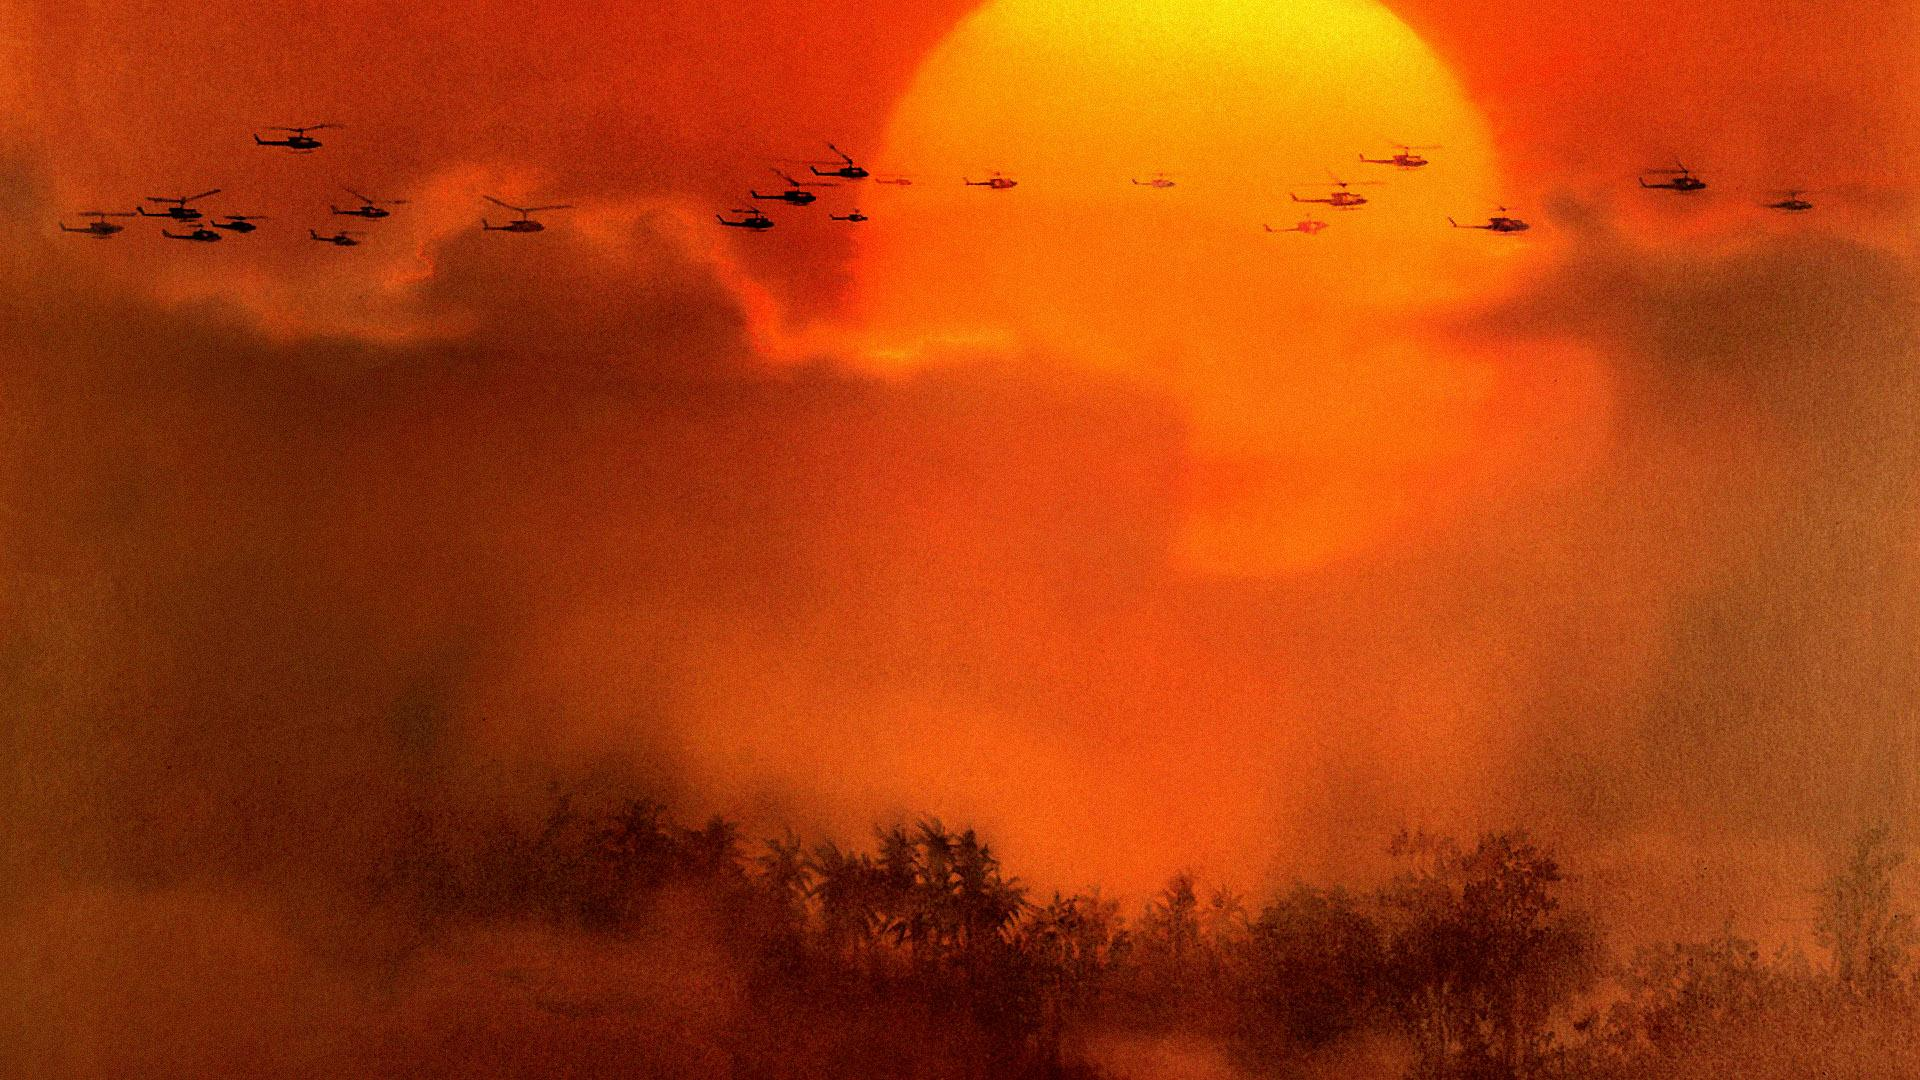 Apocalypse Now Wallpaper HD Download 1920x1080